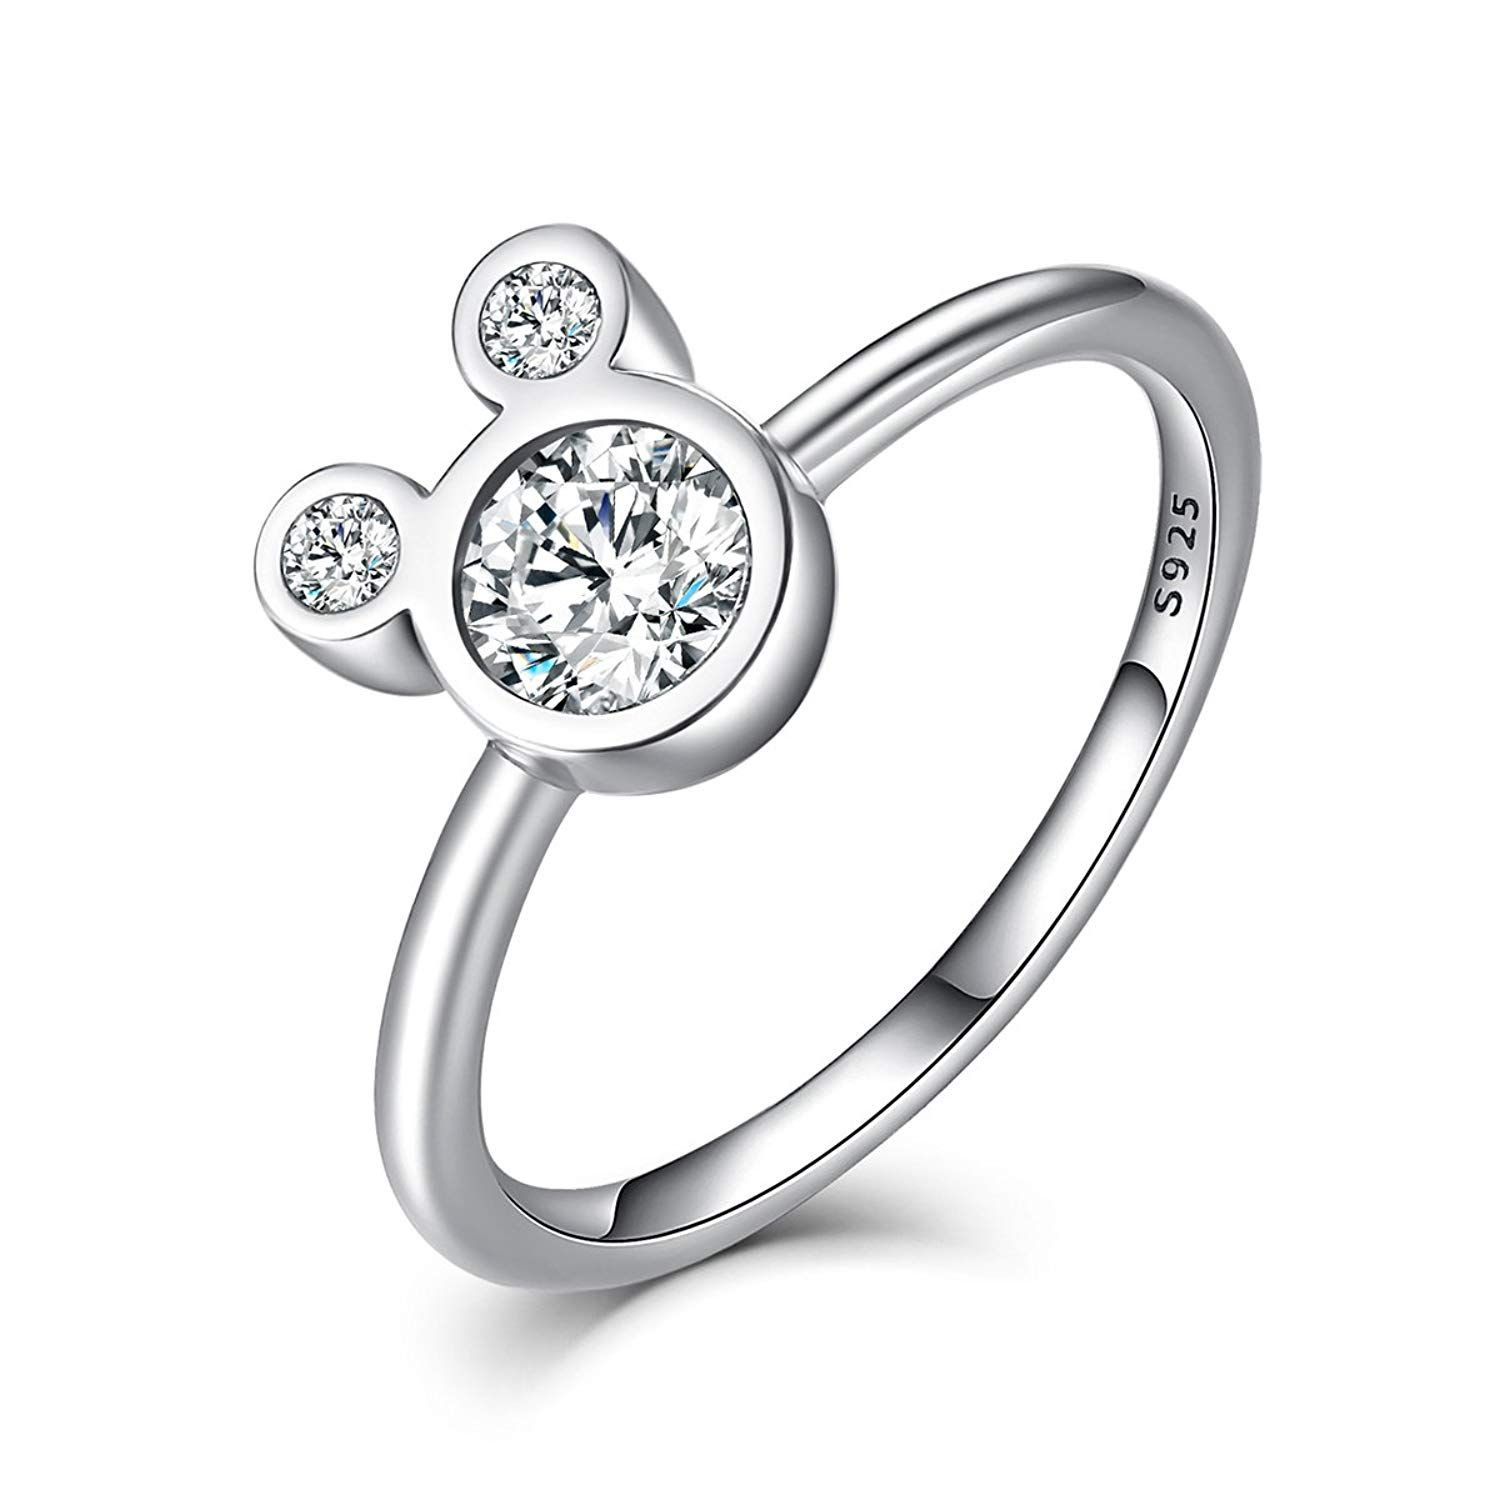 Bisaer Women S Mini Mouse Rings Sterling Silver Plated Cubic Zirconia Cartoon Mouse Silver Rings For Sterling Silver Rings Mouse Rings Sterling Silver Jewelry